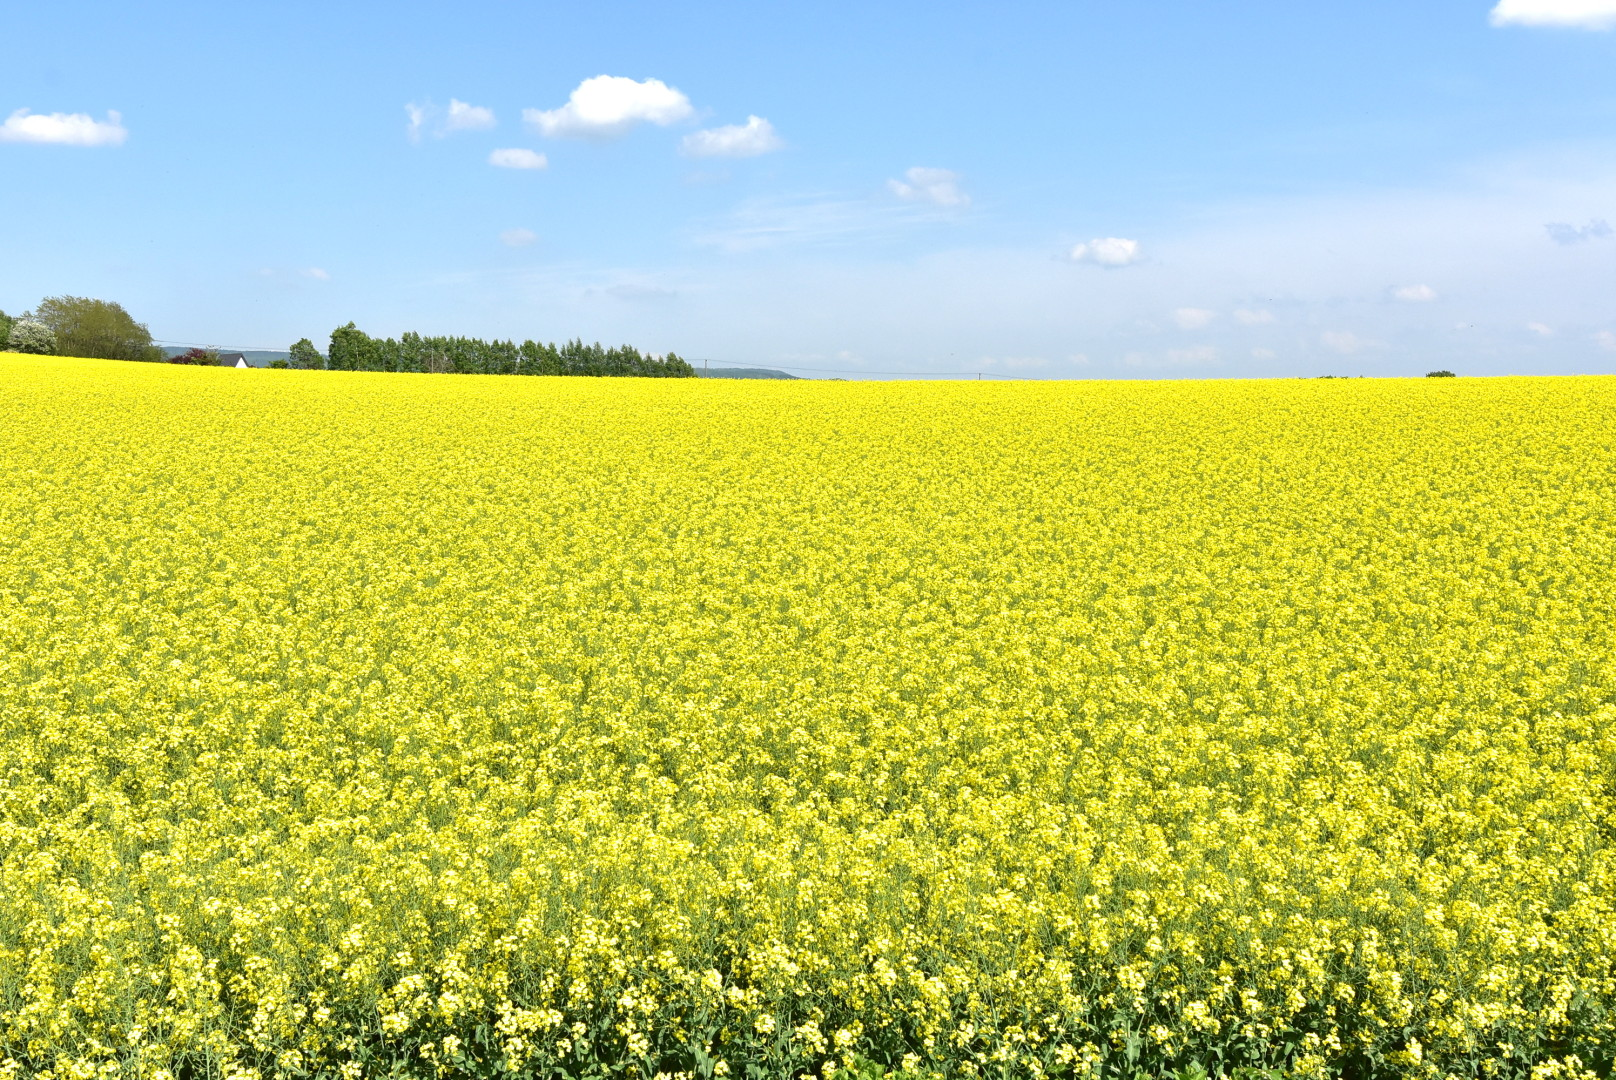 Rapeseed flowers are in full bloom in takikawa hokkaido treasure a city situated between sapporo and asahikawa rapeseed flowers are in full bloom allowing visitors to enjoy a world completely bathed in yellow mightylinksfo